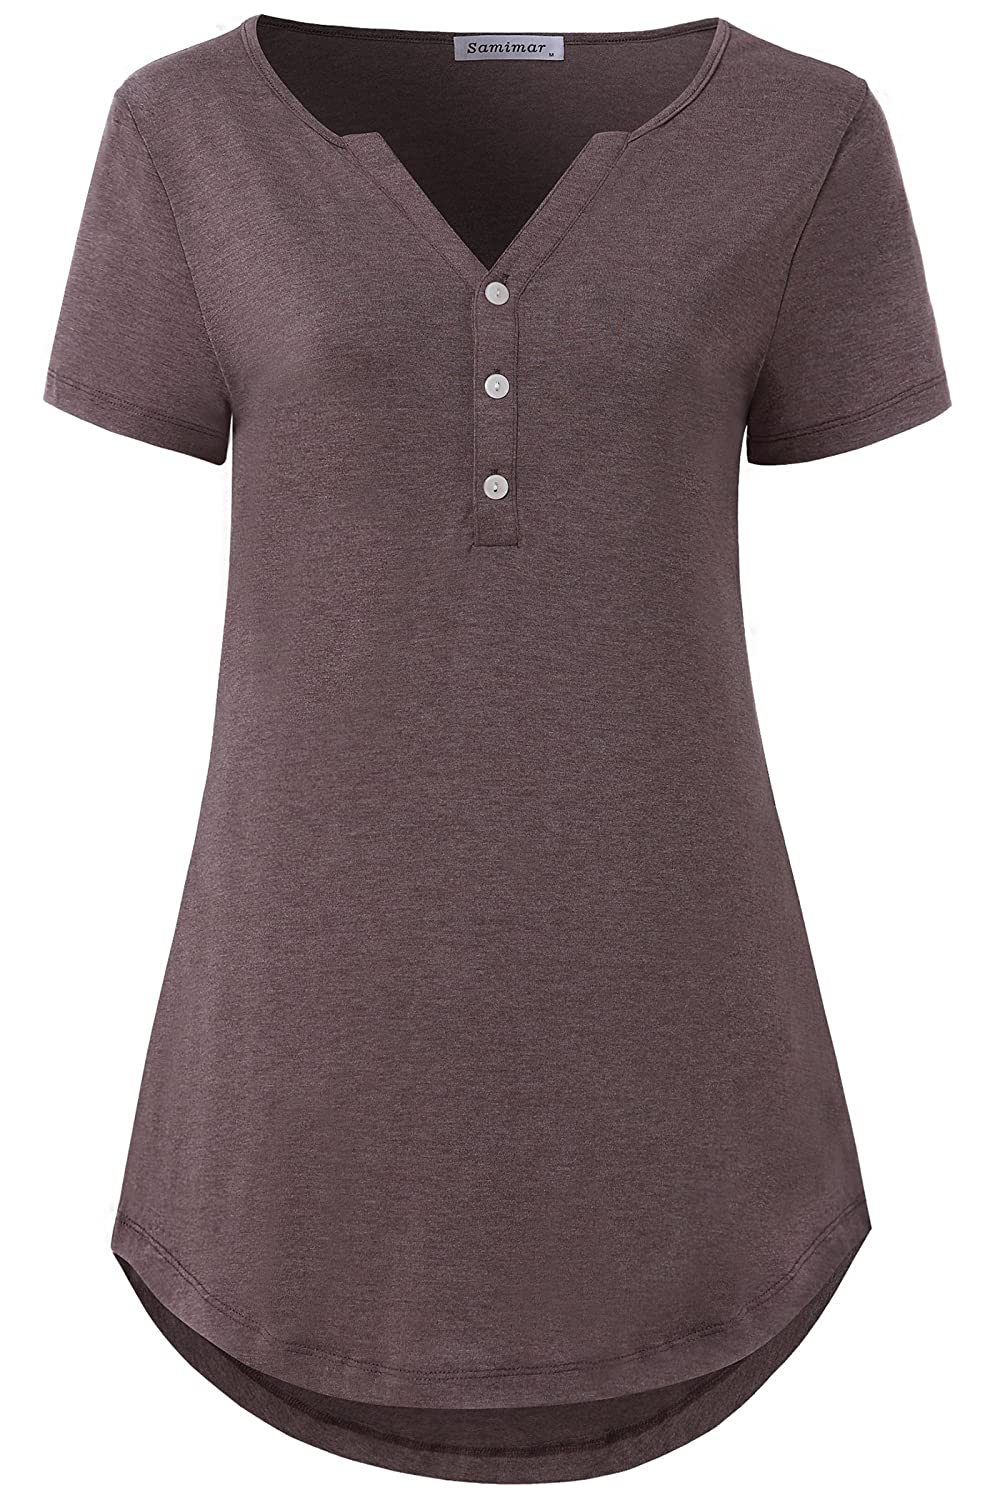 0f51d03c1 Features: Short sleeve,classic v-neck,high low curved hem,trendy and  elegant style to make you look more elegant.